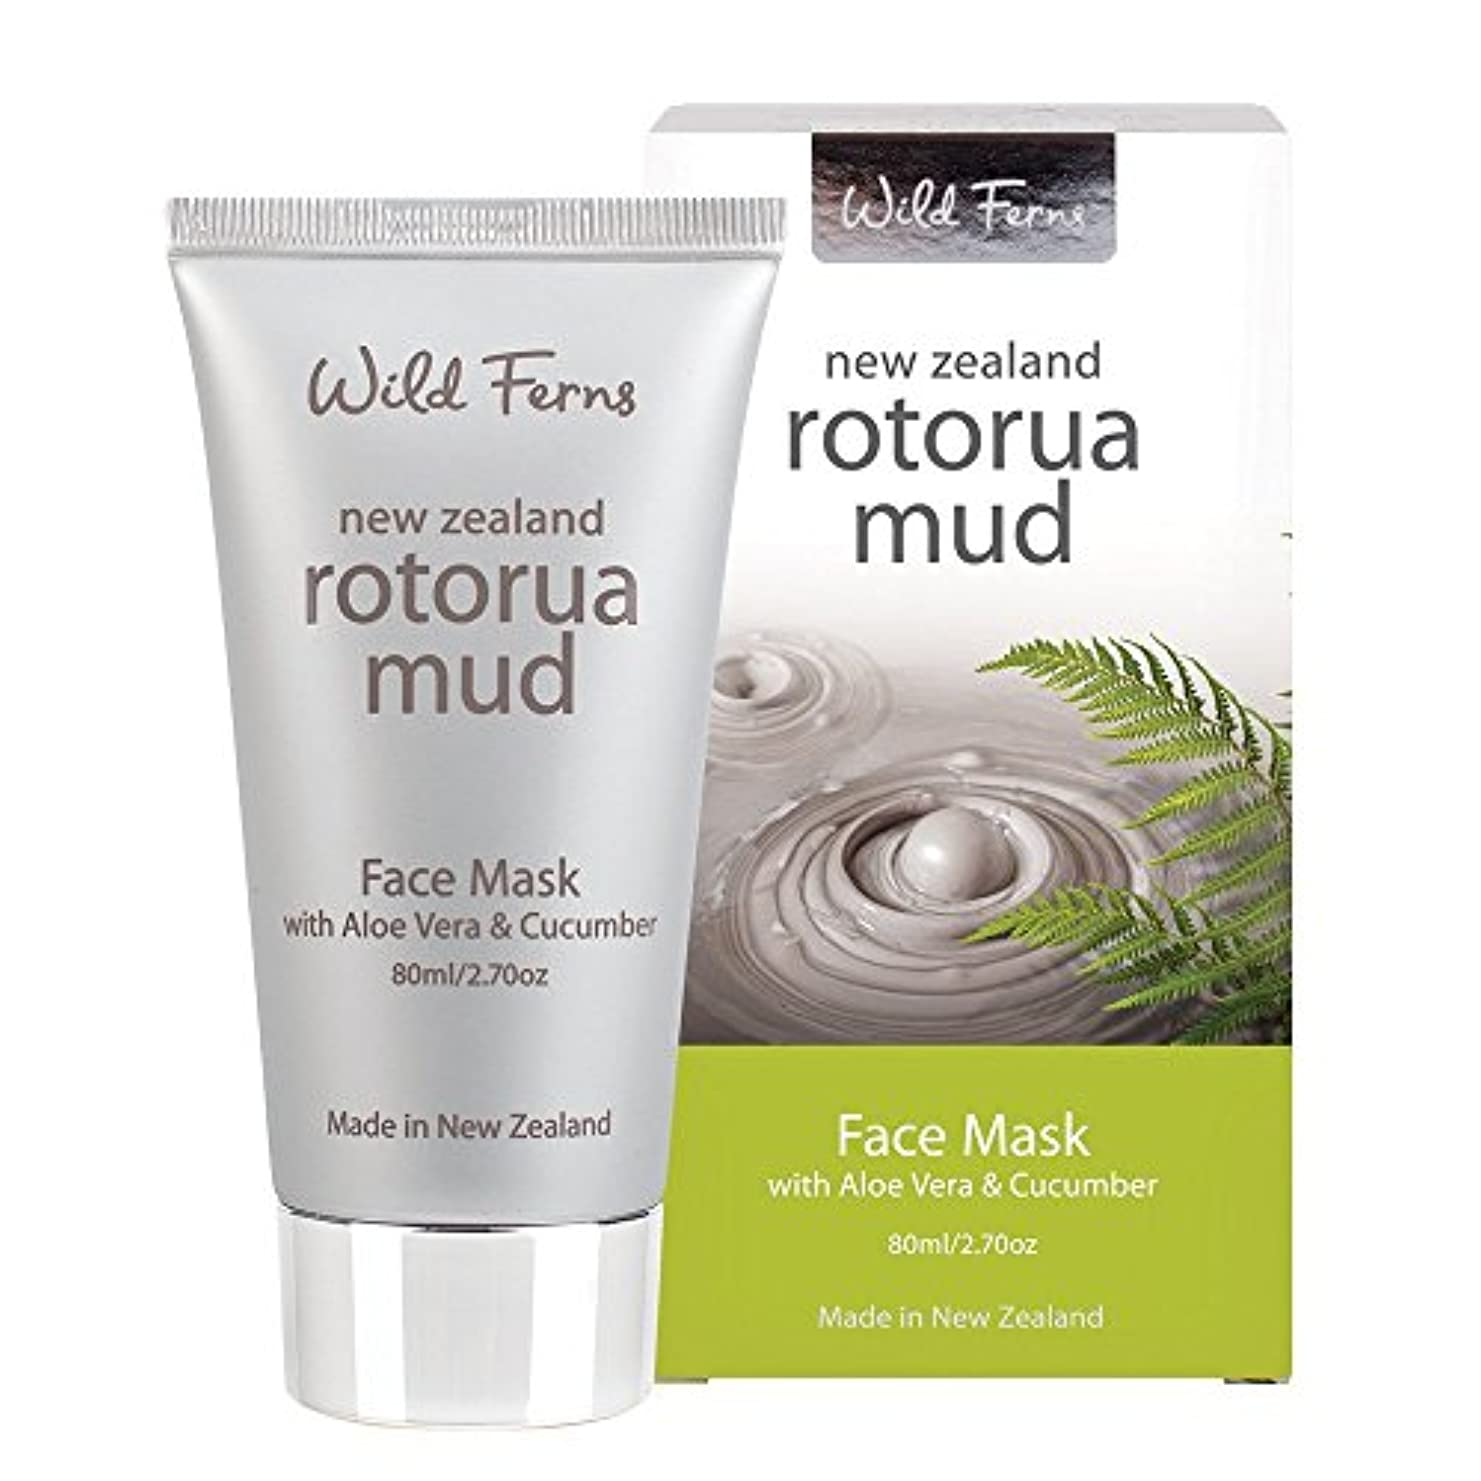 バナー優雅な粘り強いRotorua Face Mask with Aloe Vera & Cucumber 80ml